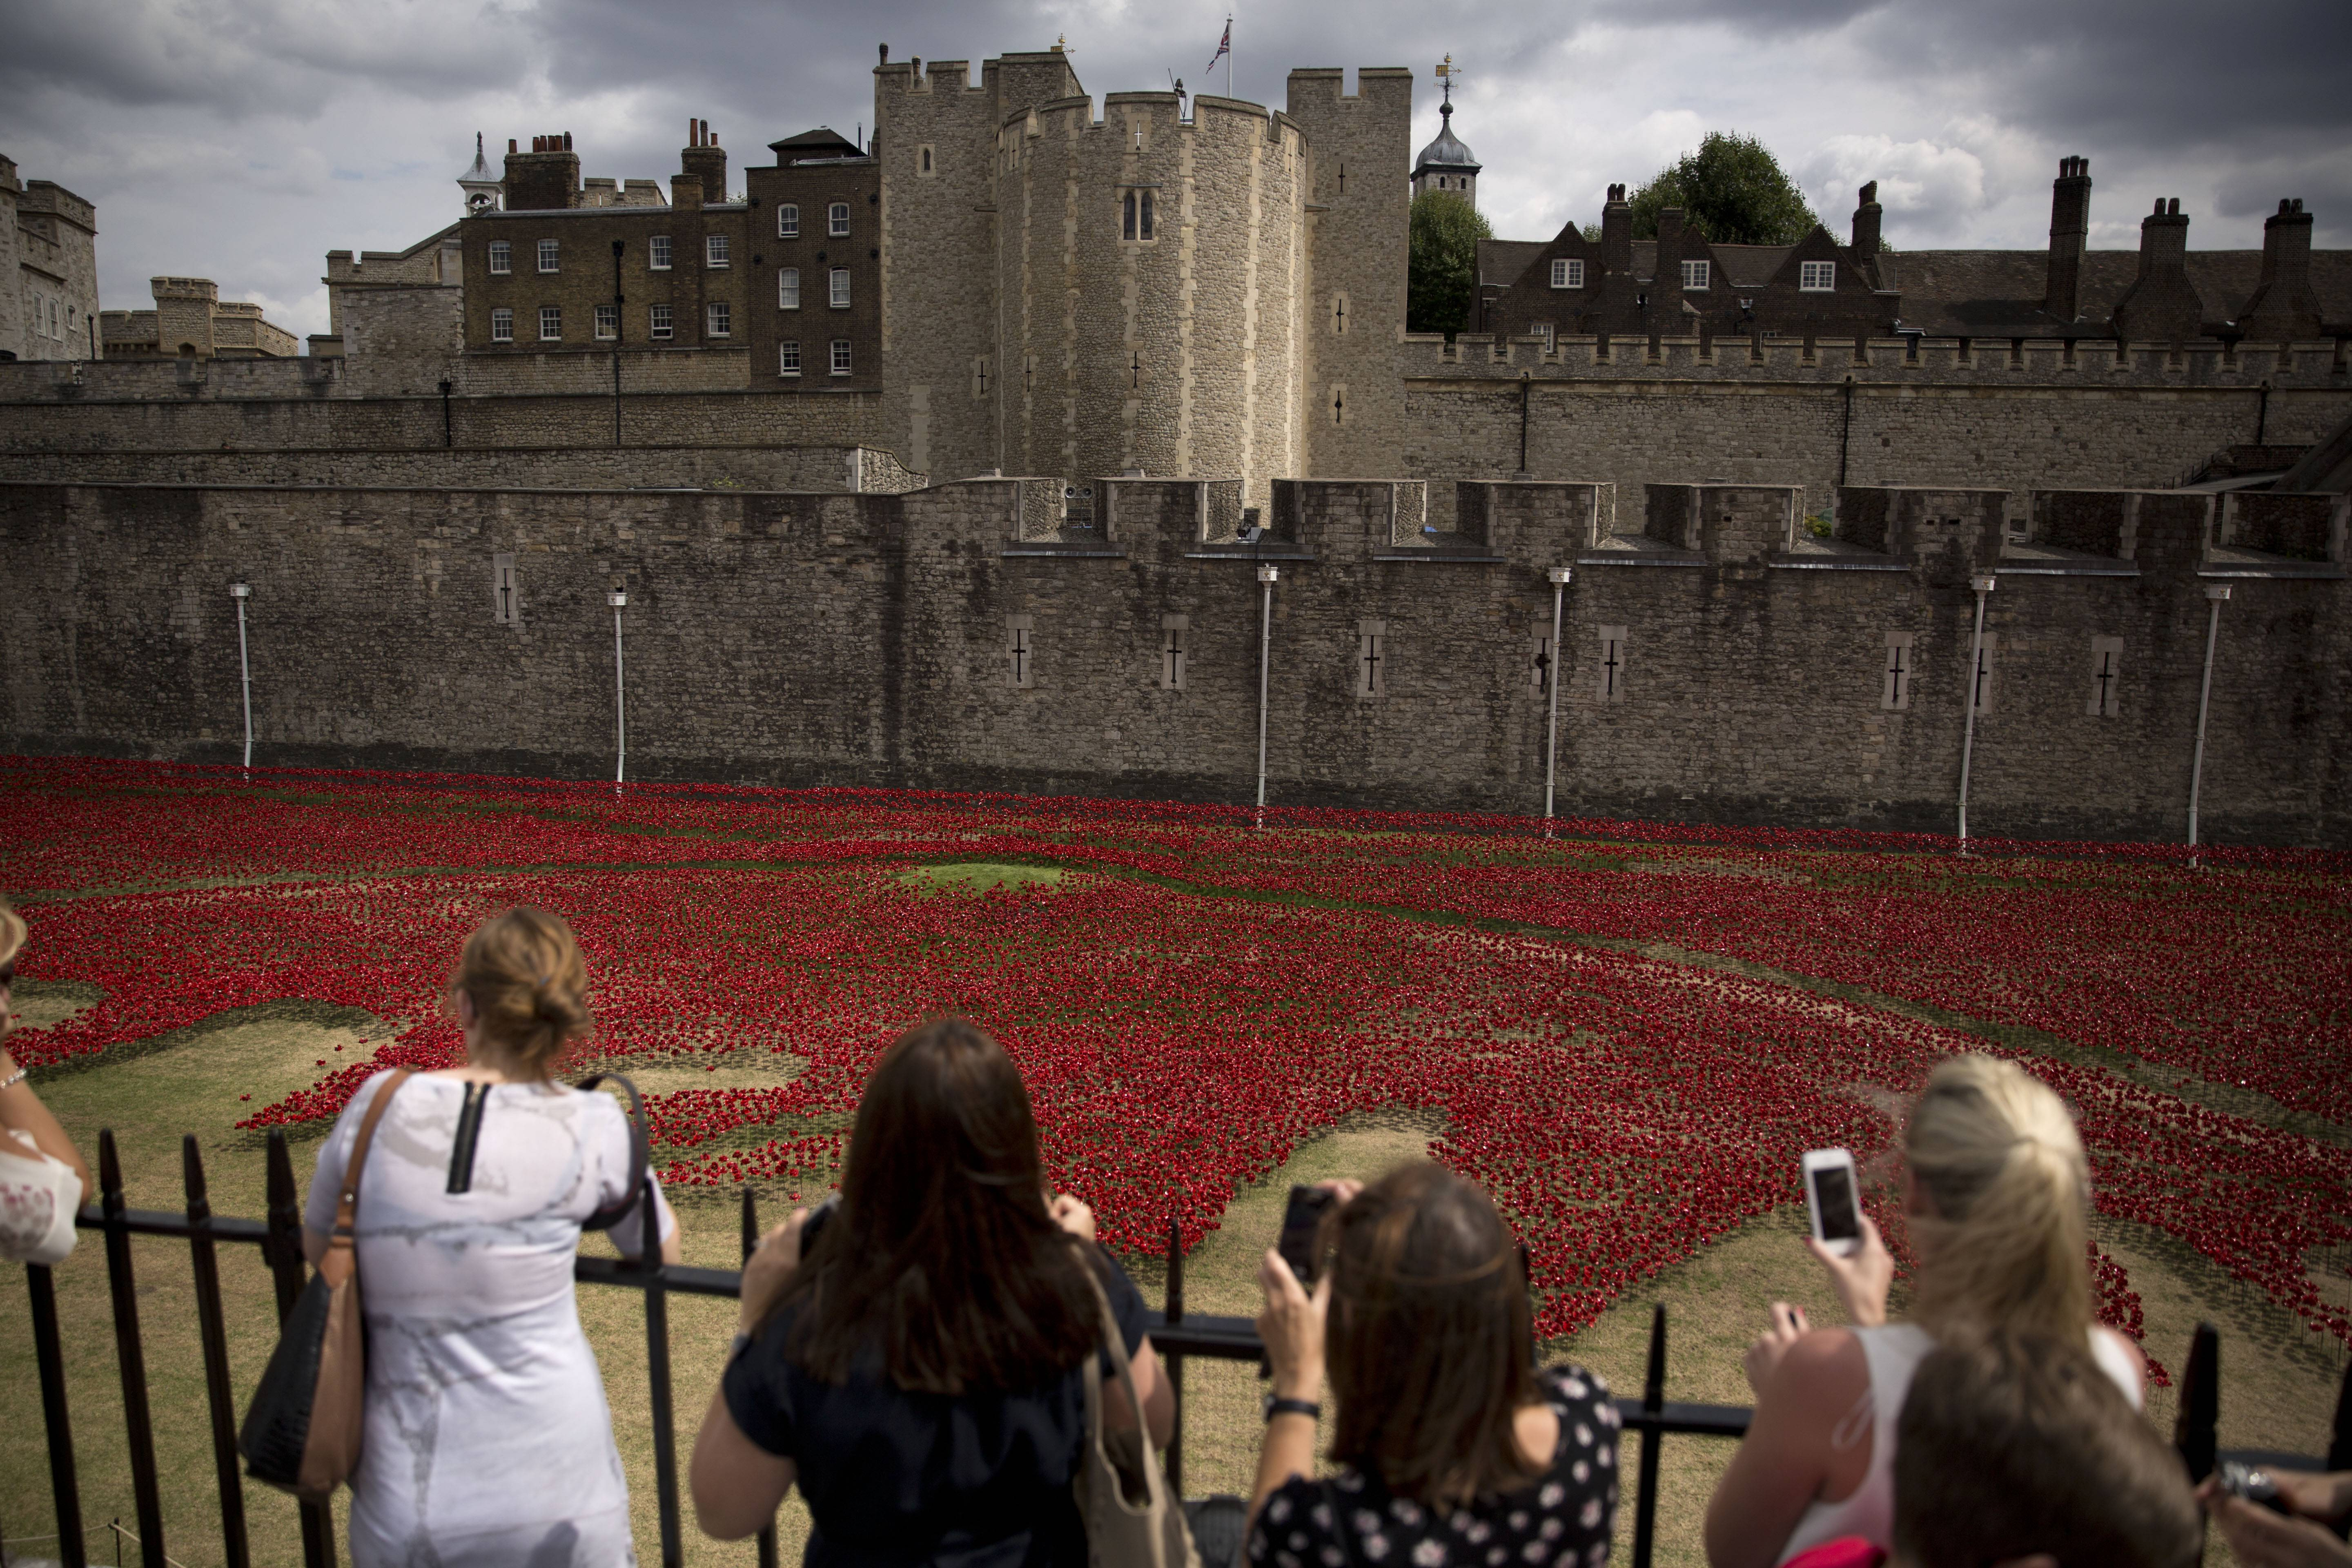 People take pictures Tuesday of a ceramic poppy art installation by artist Paul Cummins entitled 'Blood Swept Lands and Seas of Red' after its official unveiling in the dry moat of the Tower of London in London.